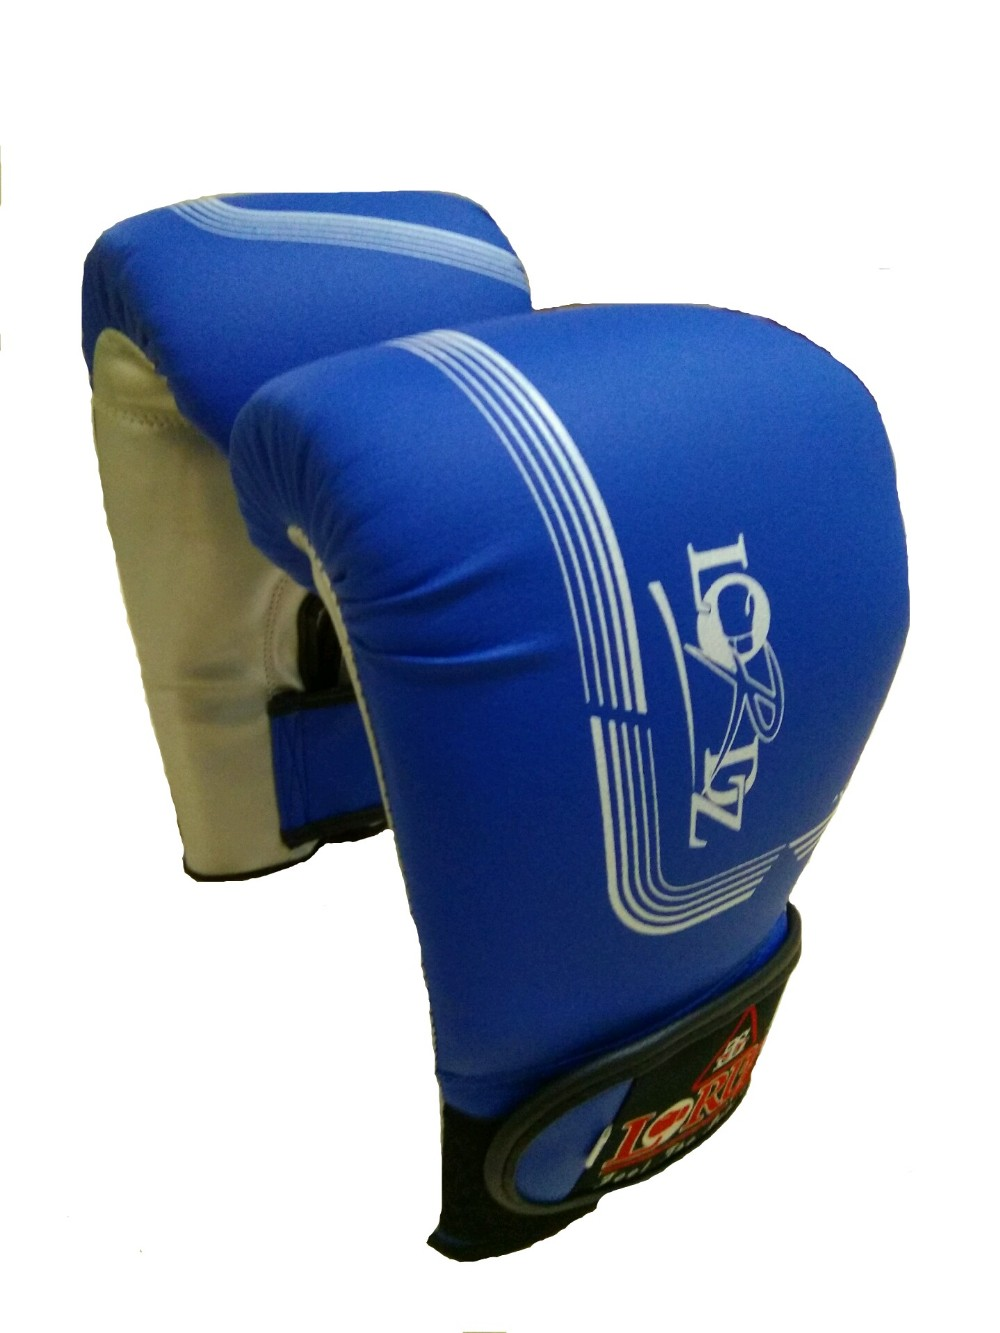 Shiv Naresh Teens Boxing Gloves 12oz: Amateur Boxing Glove Weight